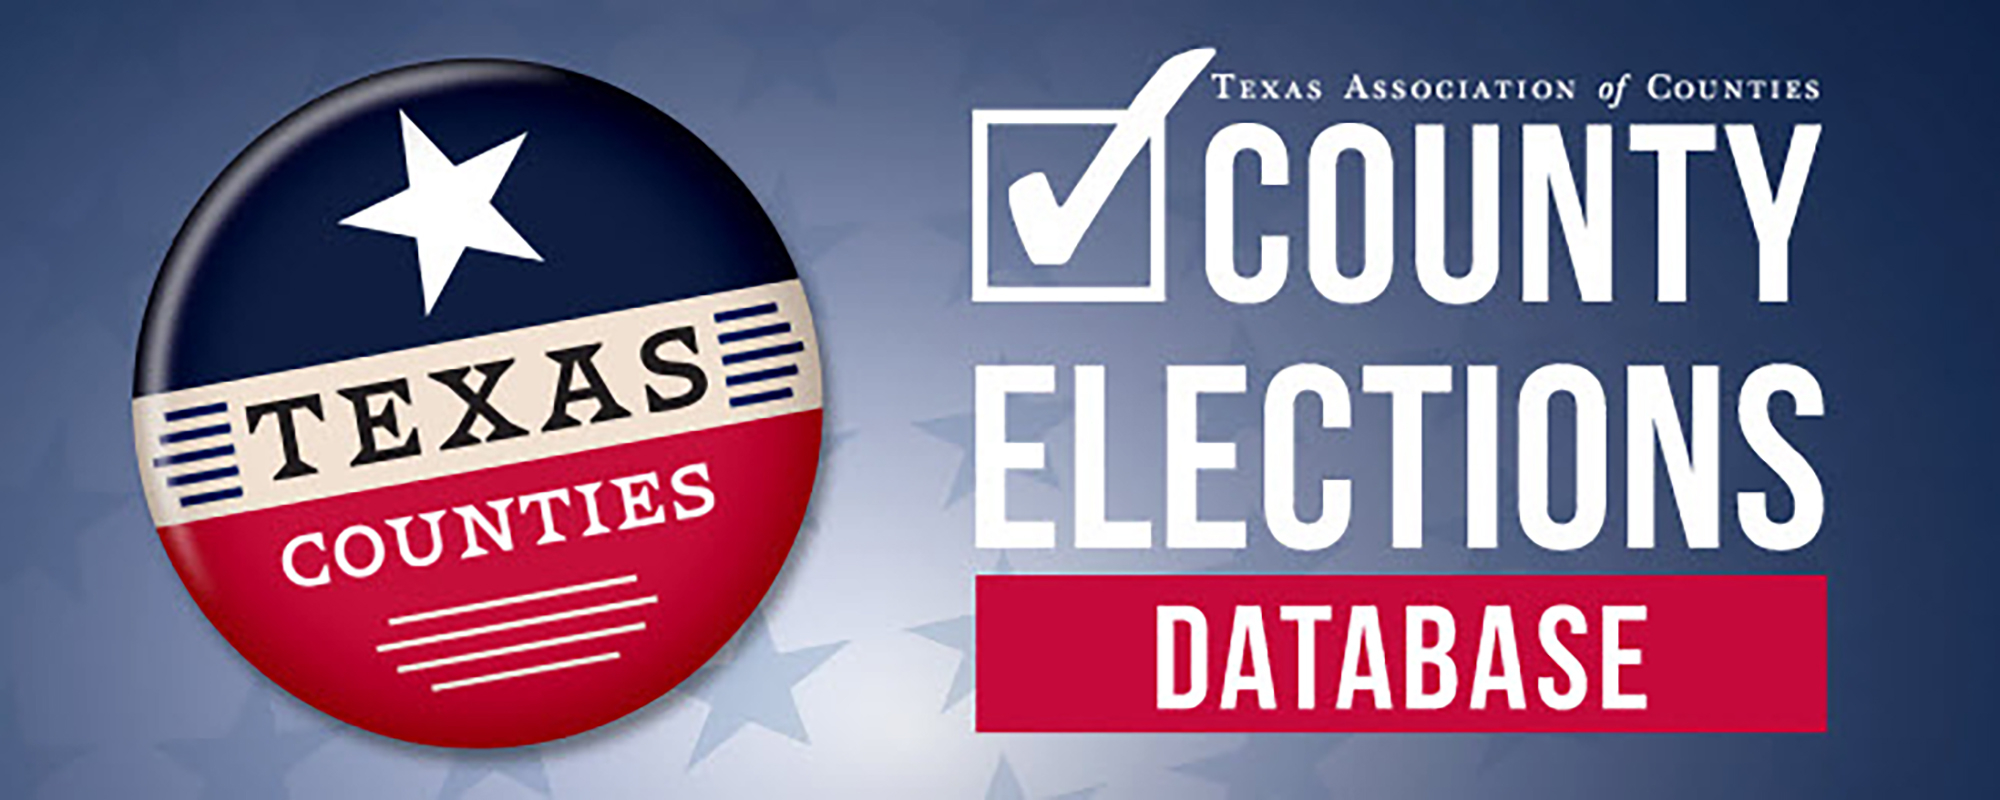 County Elections Database